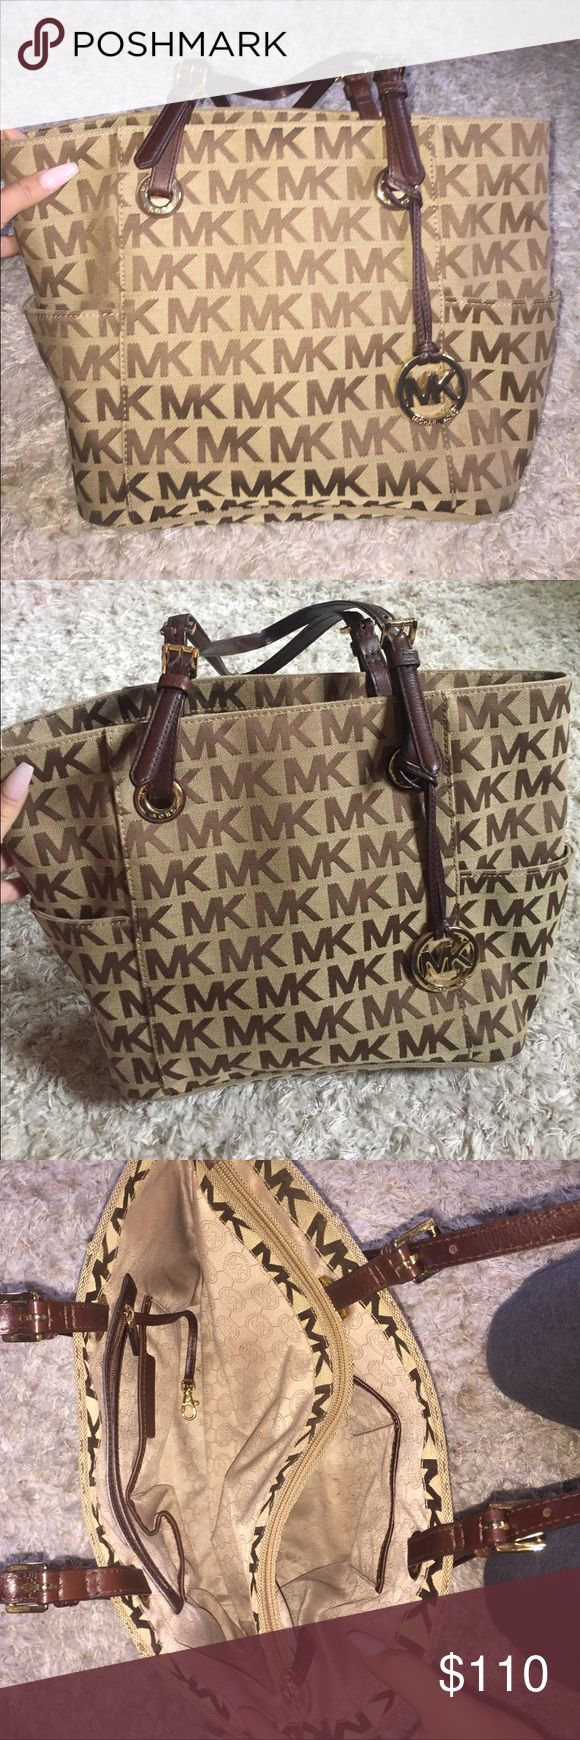 Michael Kors Jet Set Signature Logo Tote Brown/Beige lightly used and recently purchased Michael Kors Bags Totes